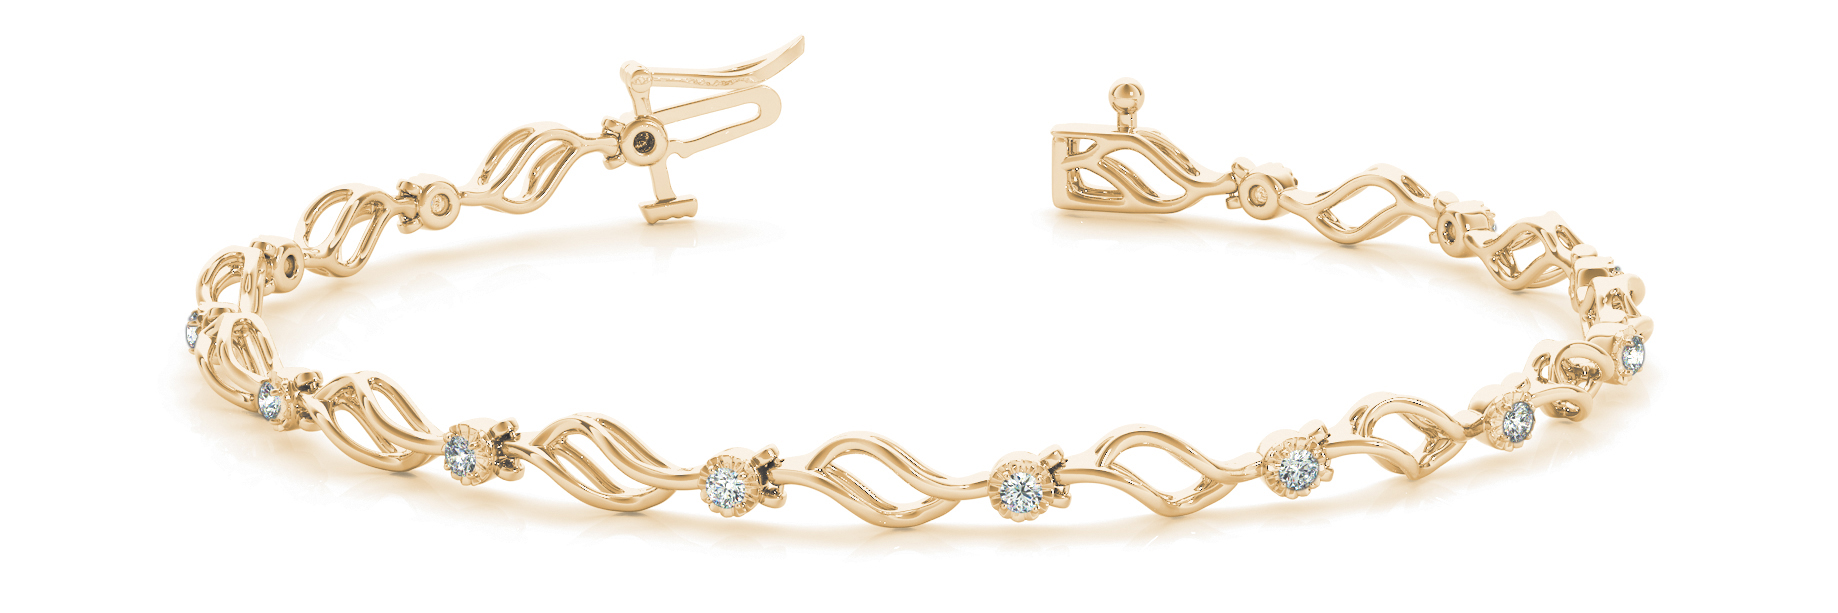 Flowing Leaves Round Diamond 0.21 Carat Yellow Gold Bracelet